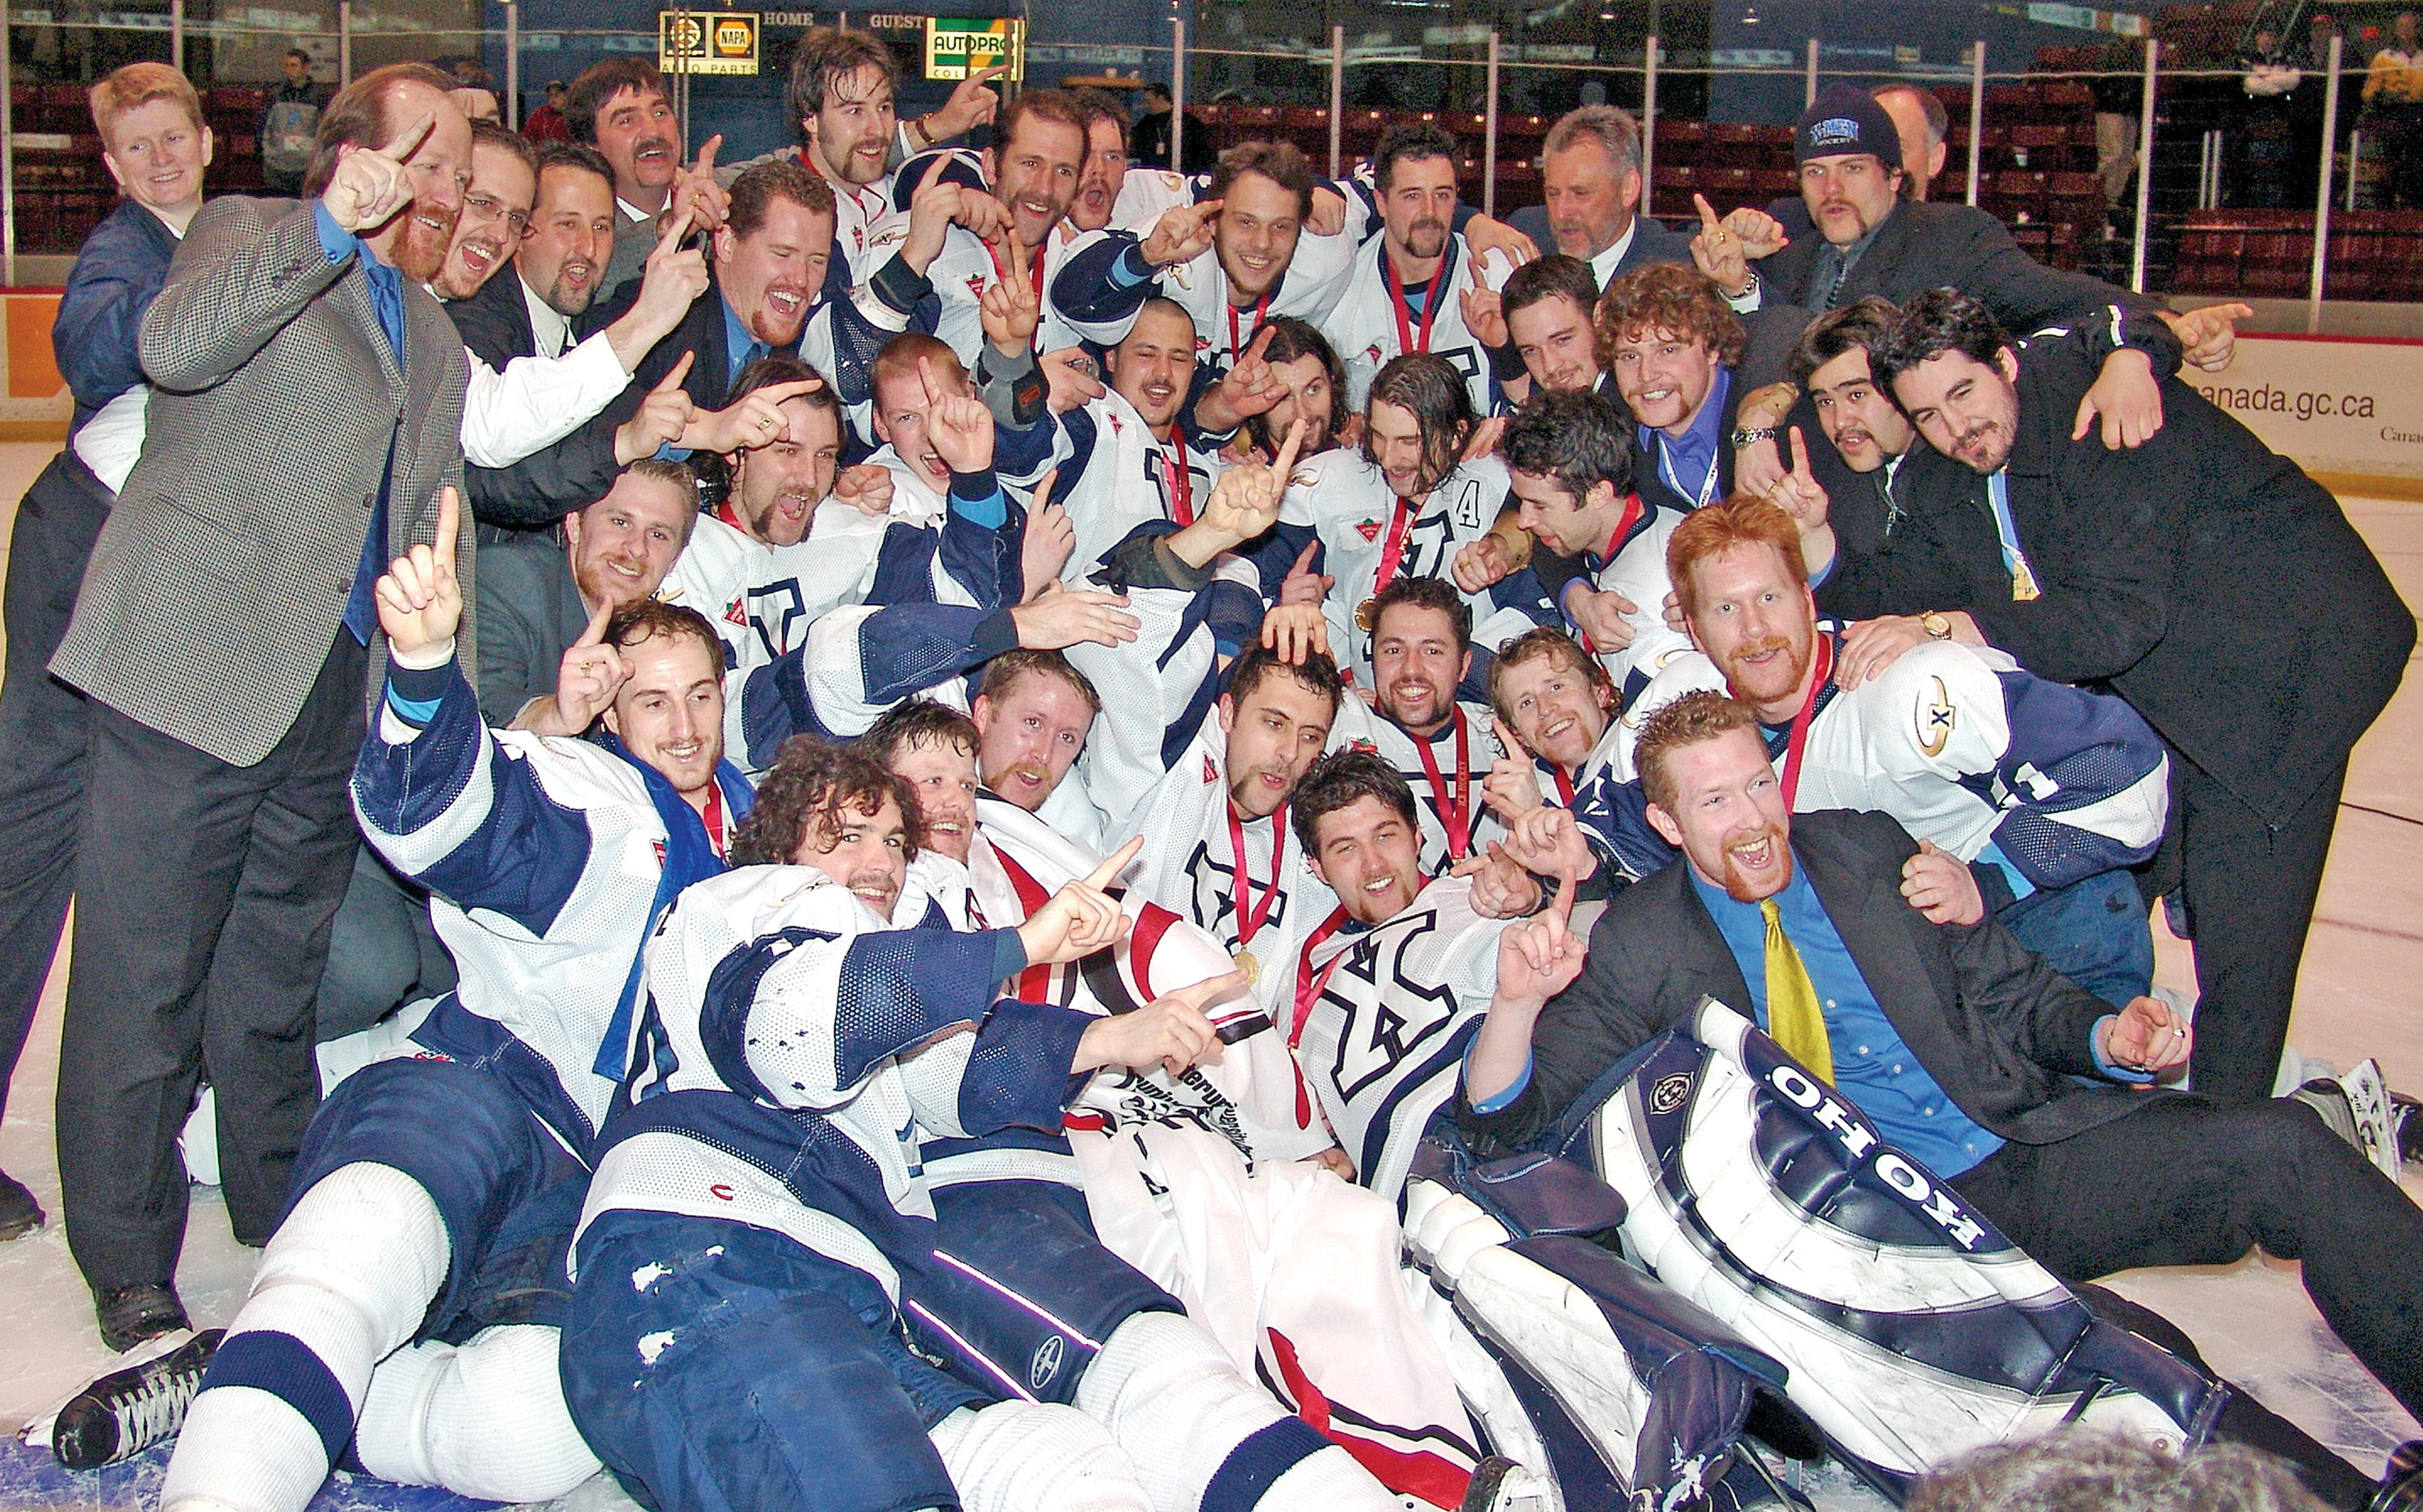 StFXhockeyCISchamps.jpg (2.33 MB)